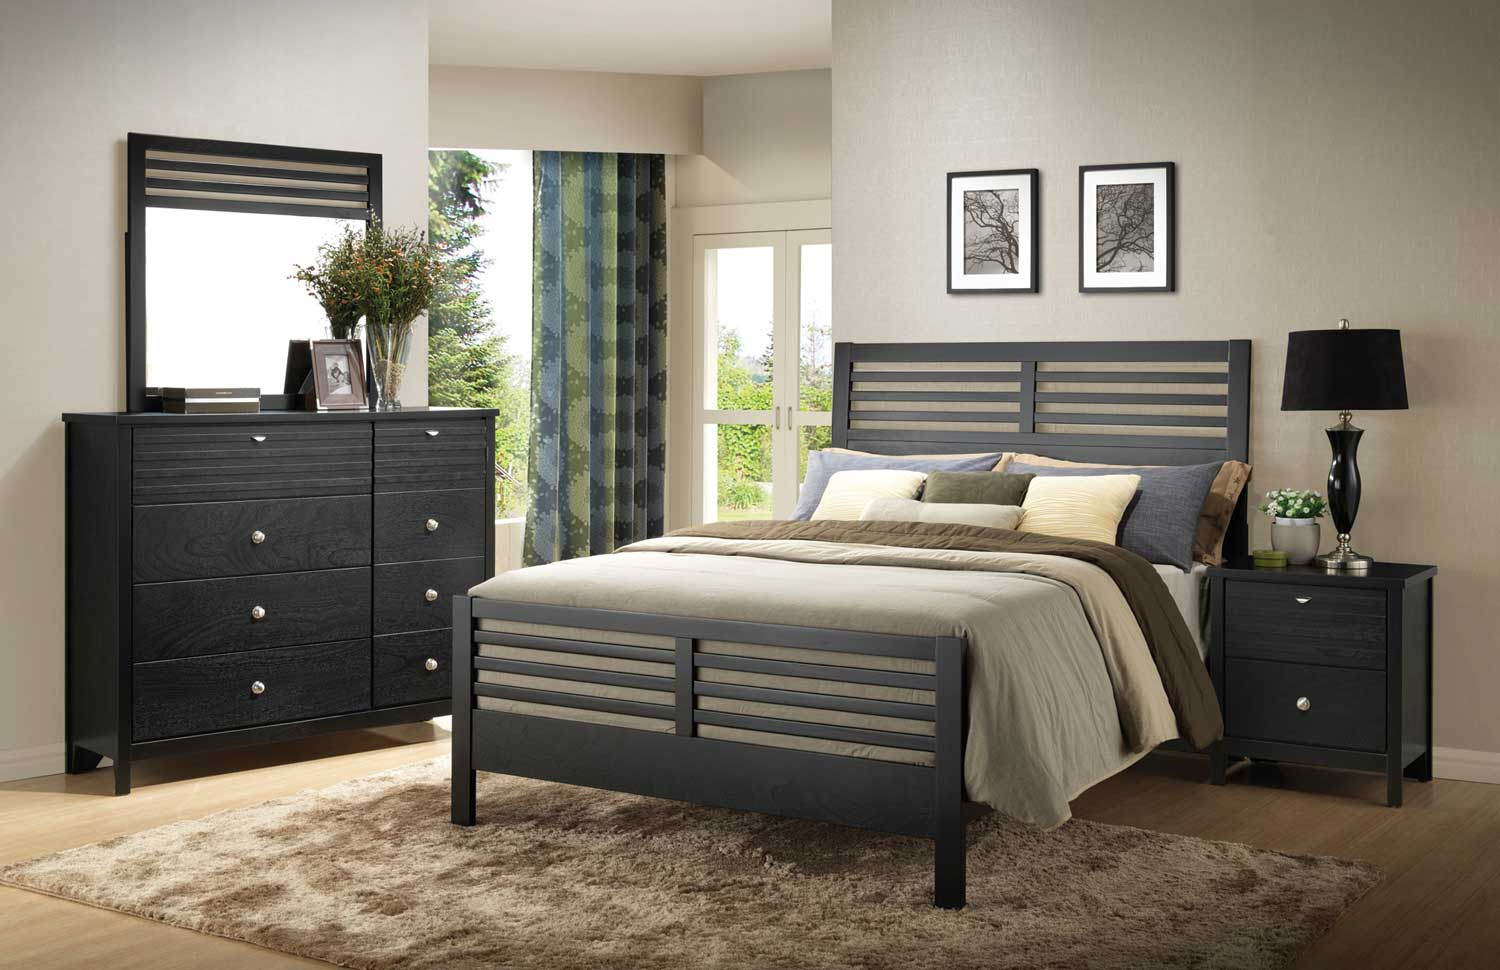 Coaster Richmond Bedroom Set Black 202721 Bed Set